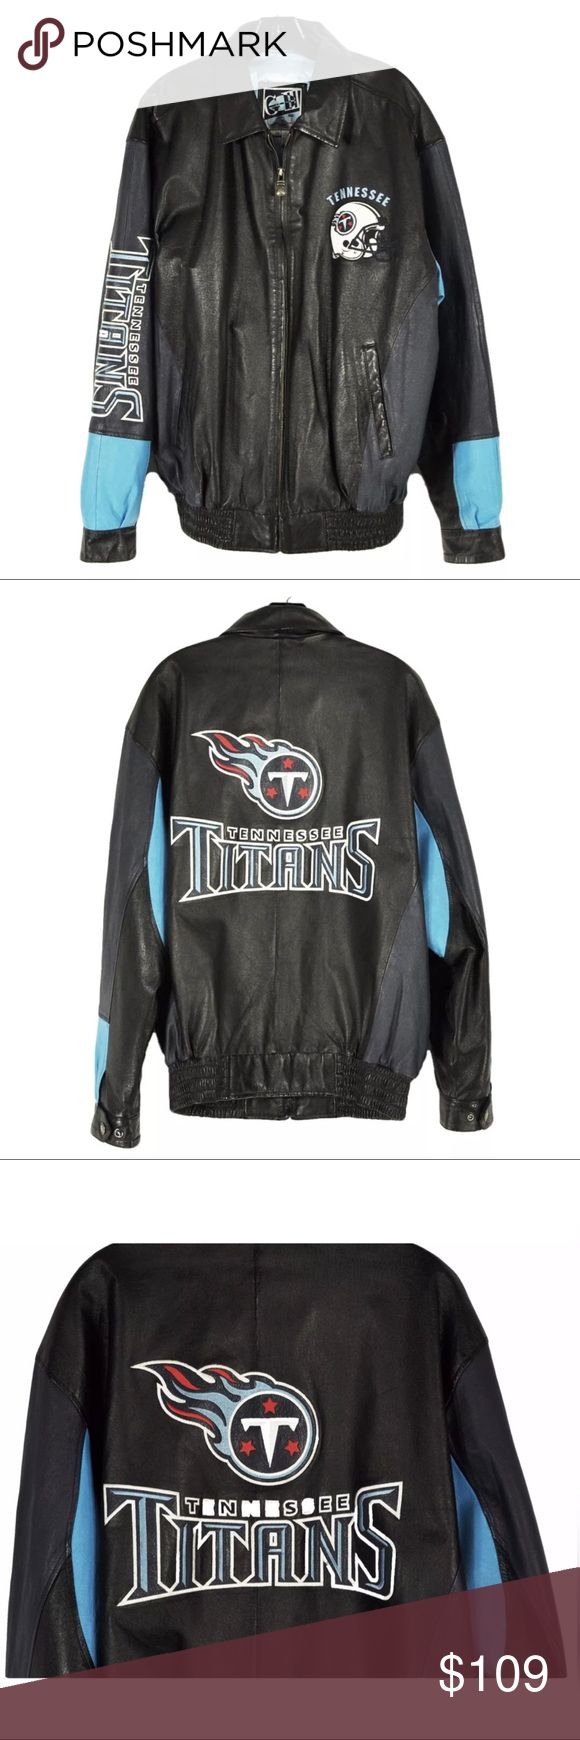 """Tennessee Titans Football G-III Carl Banks Leather Tennessee Titans NFL Tennessee Titans Leather Jacket by G-III & Carl Banks Pre-owned, Very Good condition with a small ~1/2"""" scratch in leather on the back, right side near waist. Please see photos. Details Navy blue with Tennessee Titans team  Elasticized waist  Shell: 100% Leather, Lining: 100% Polyester, Filler: 100% Polyester Approximate Measurements Shoulder to Shoulder: 22.5"""", Underarm to Underarm: 27"""", Sleeve Length: 22.25""""…"""